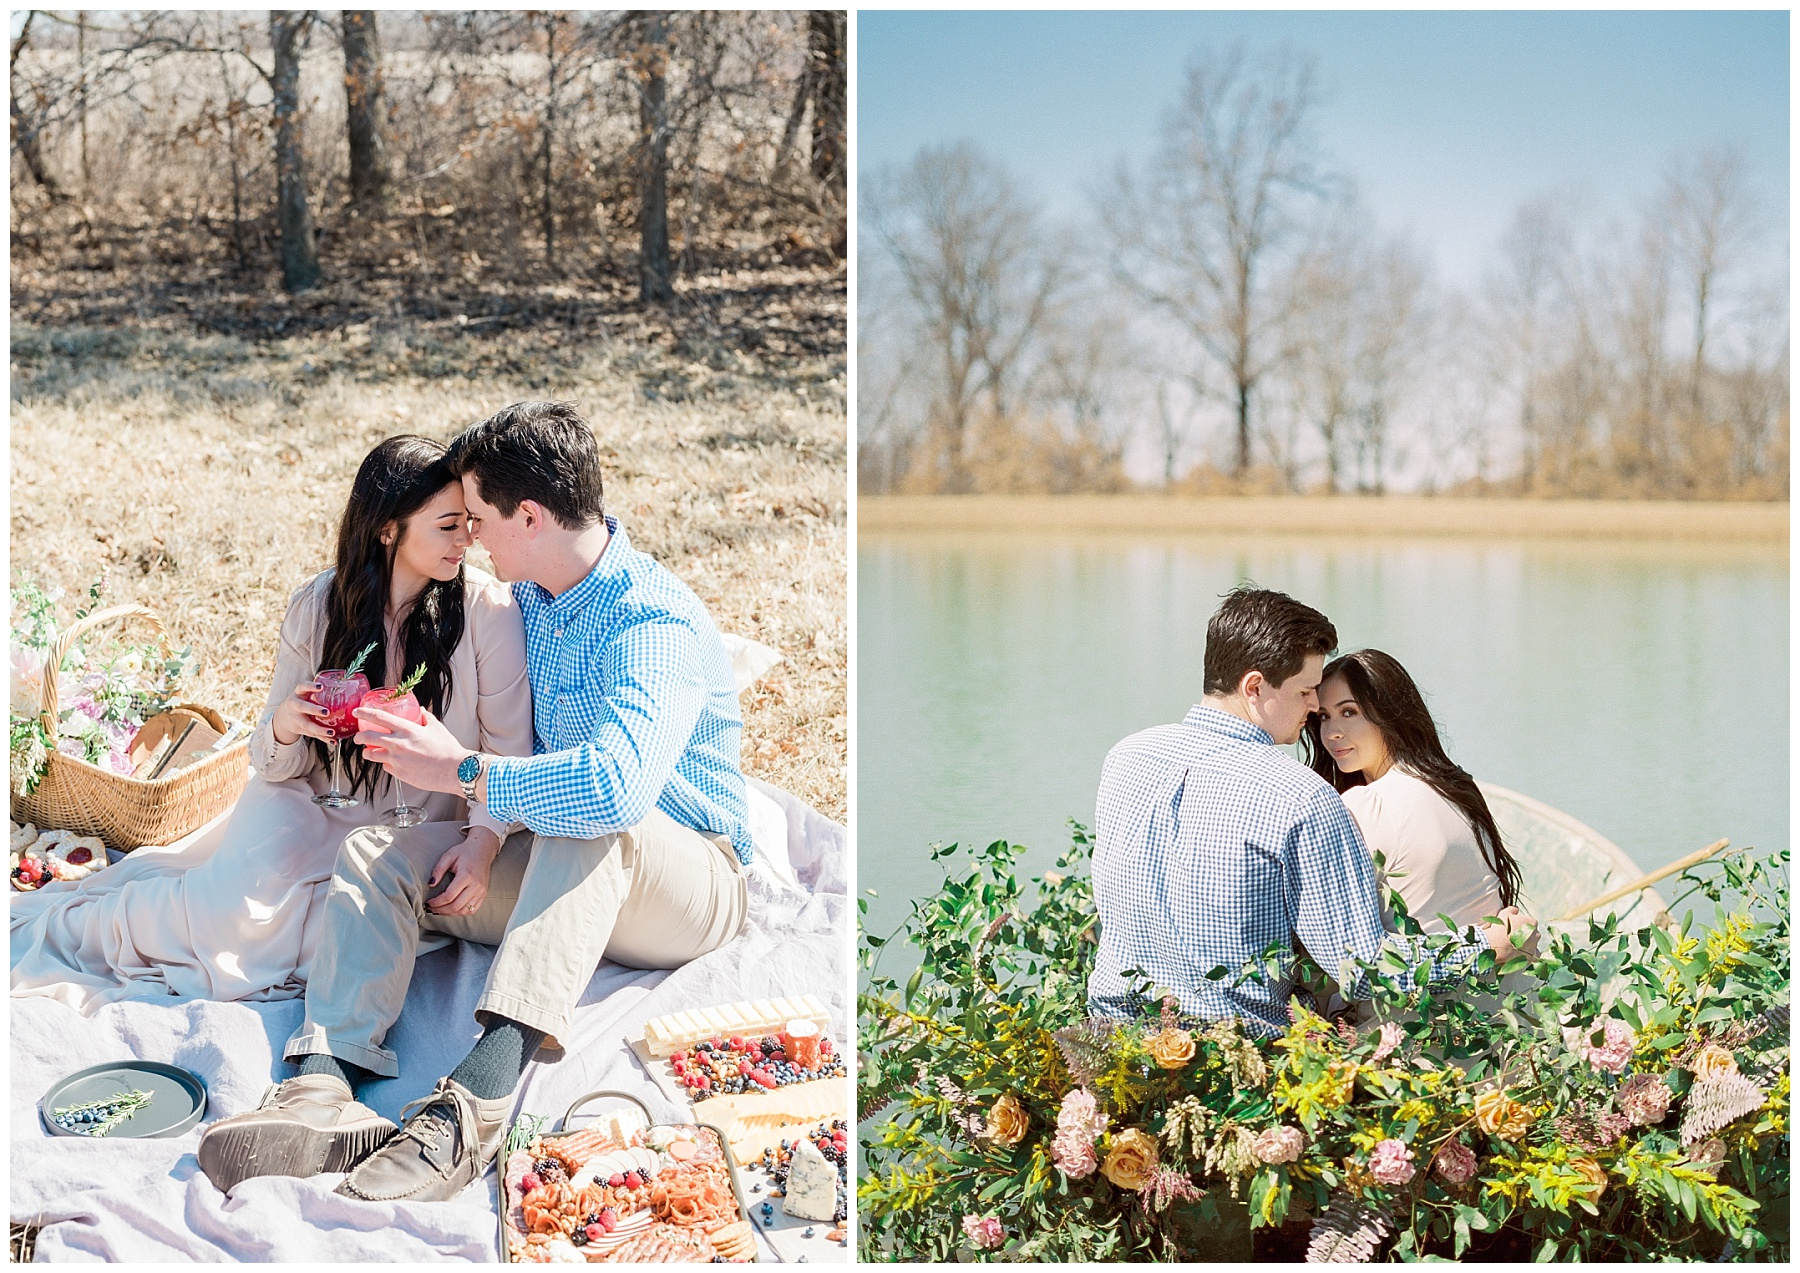 Late Fall Farm-to-table Inspired Brunch Picnic Engagement Session During Wedding Weekend by Kelsi Kliethermes Photography Best Missouri and Maui Wedding Photographer_0018.jpg